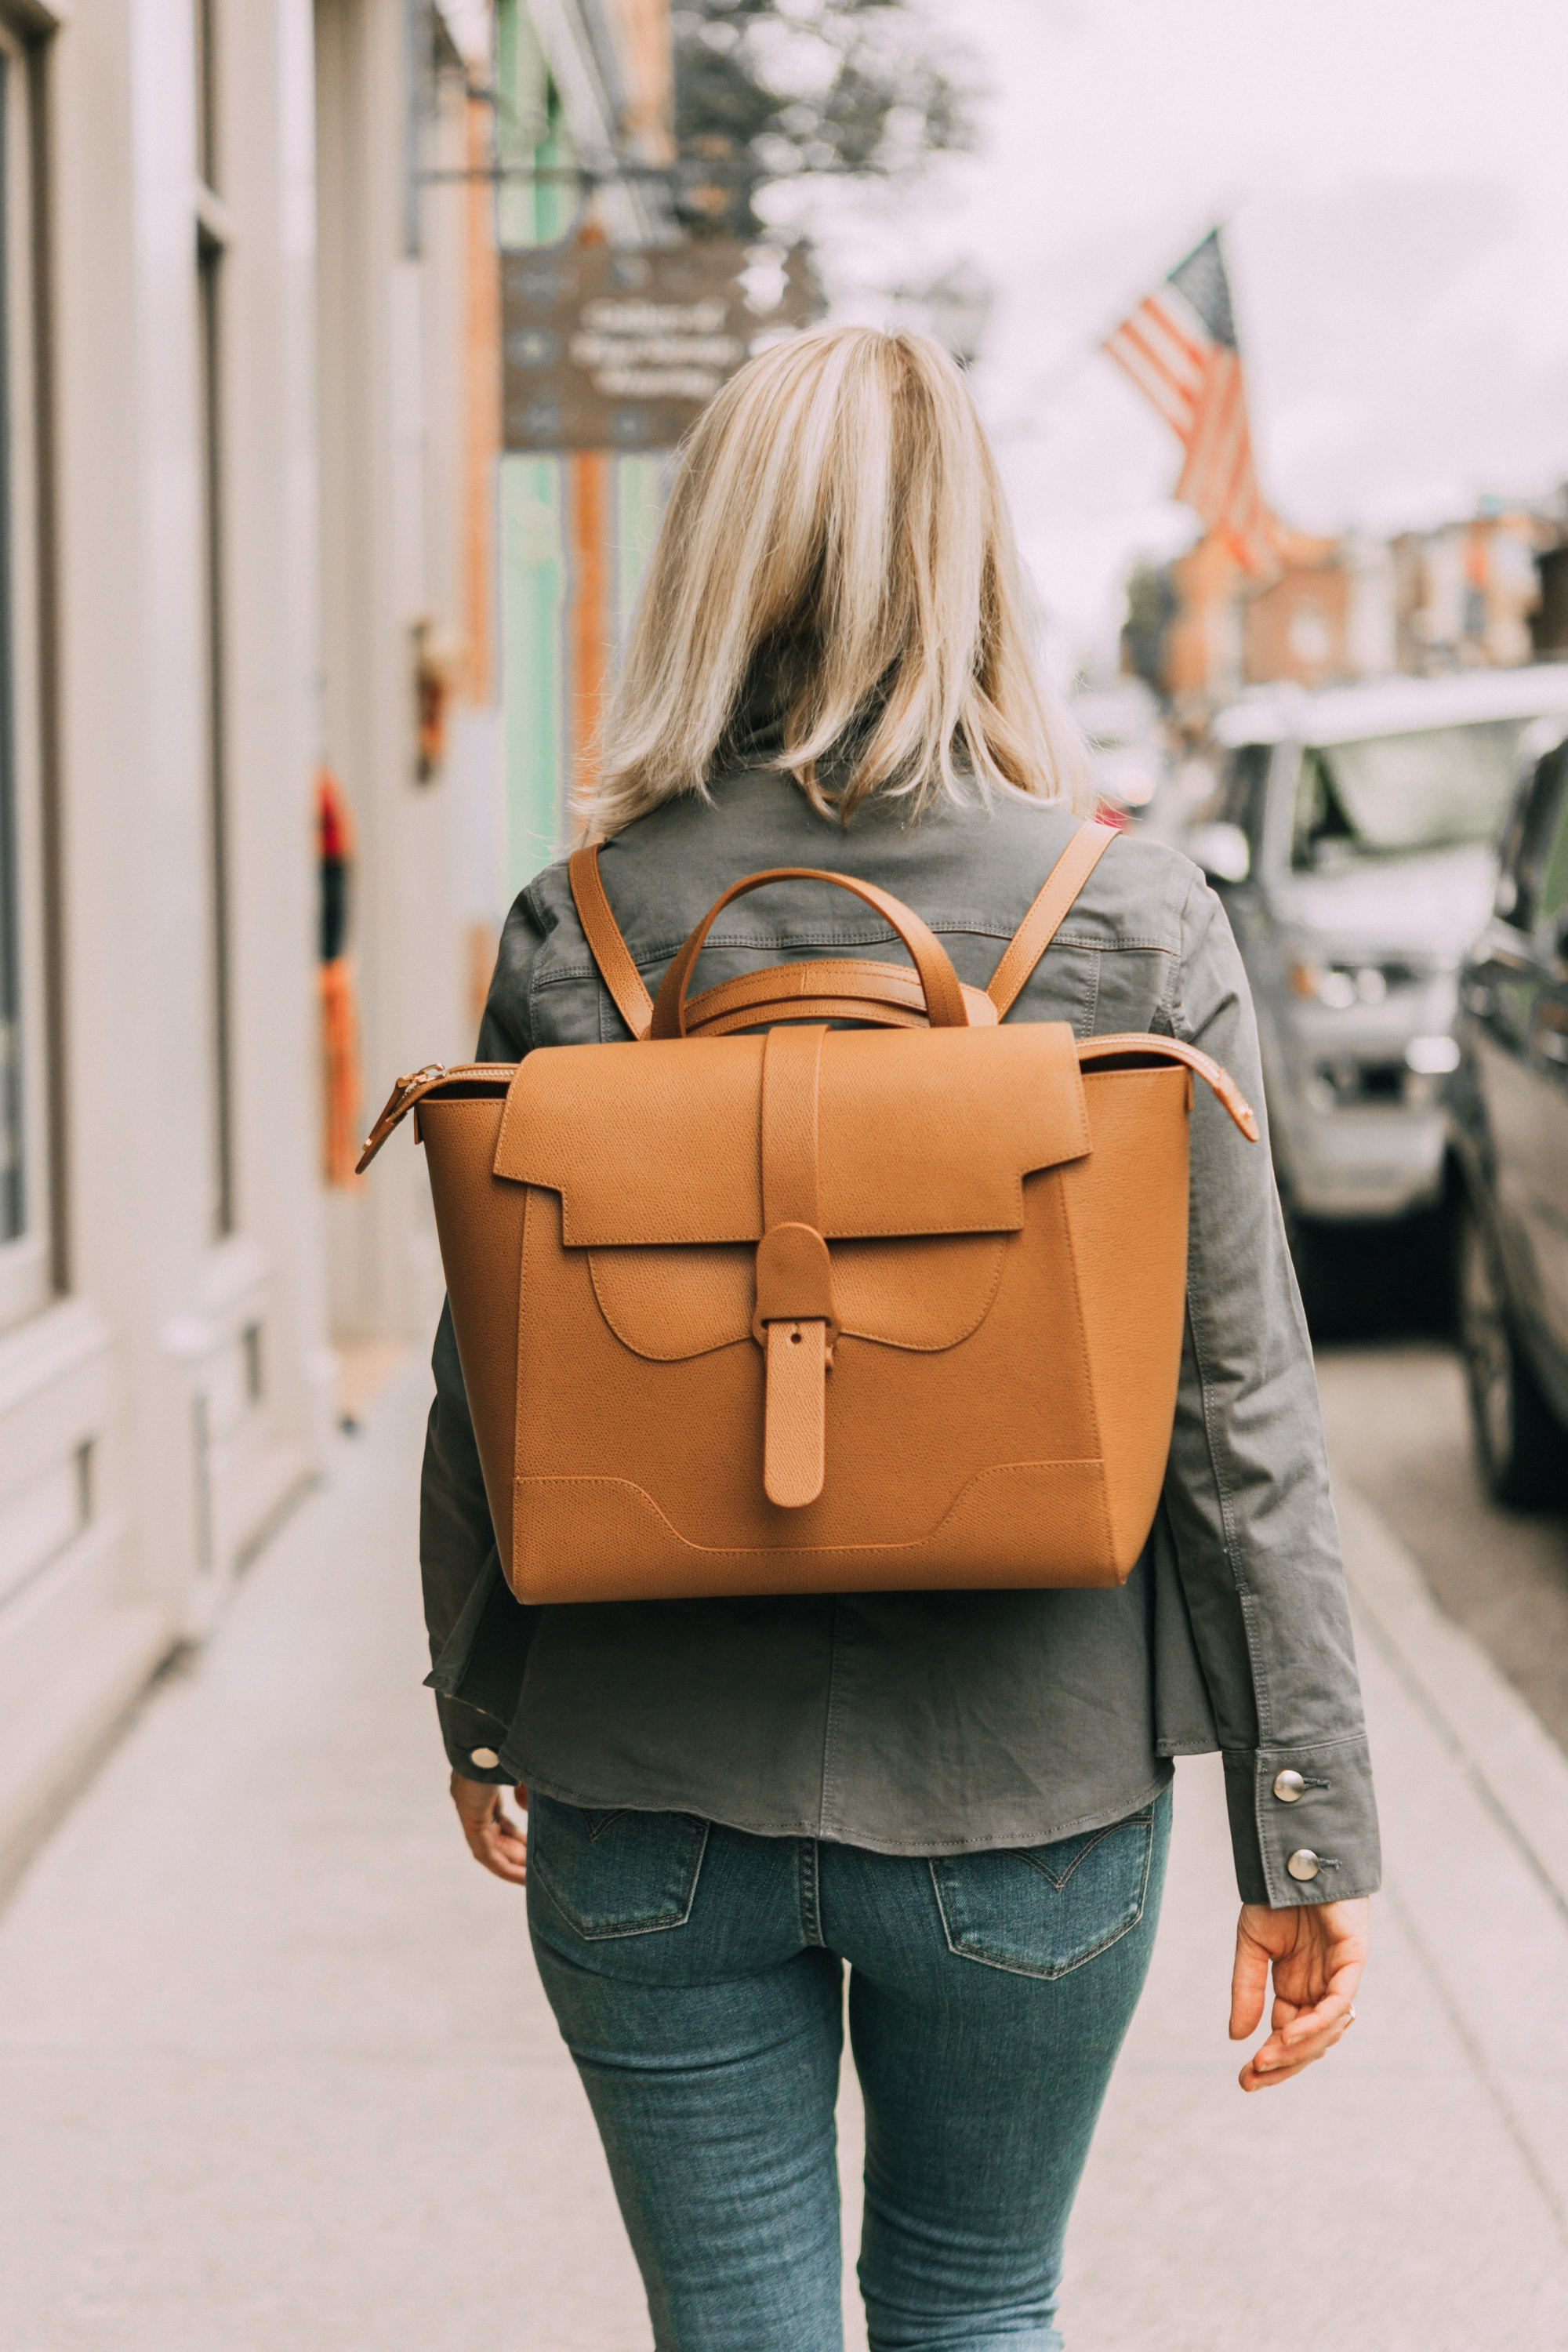 Hot Handbags, Fashion blogger Erin Busbee of BusbeeStyle.com wearing the brown Senreve Maestra Bag with Levi jeans, white cami, and Frame peplum hem green jacket in Telluride, Colorado